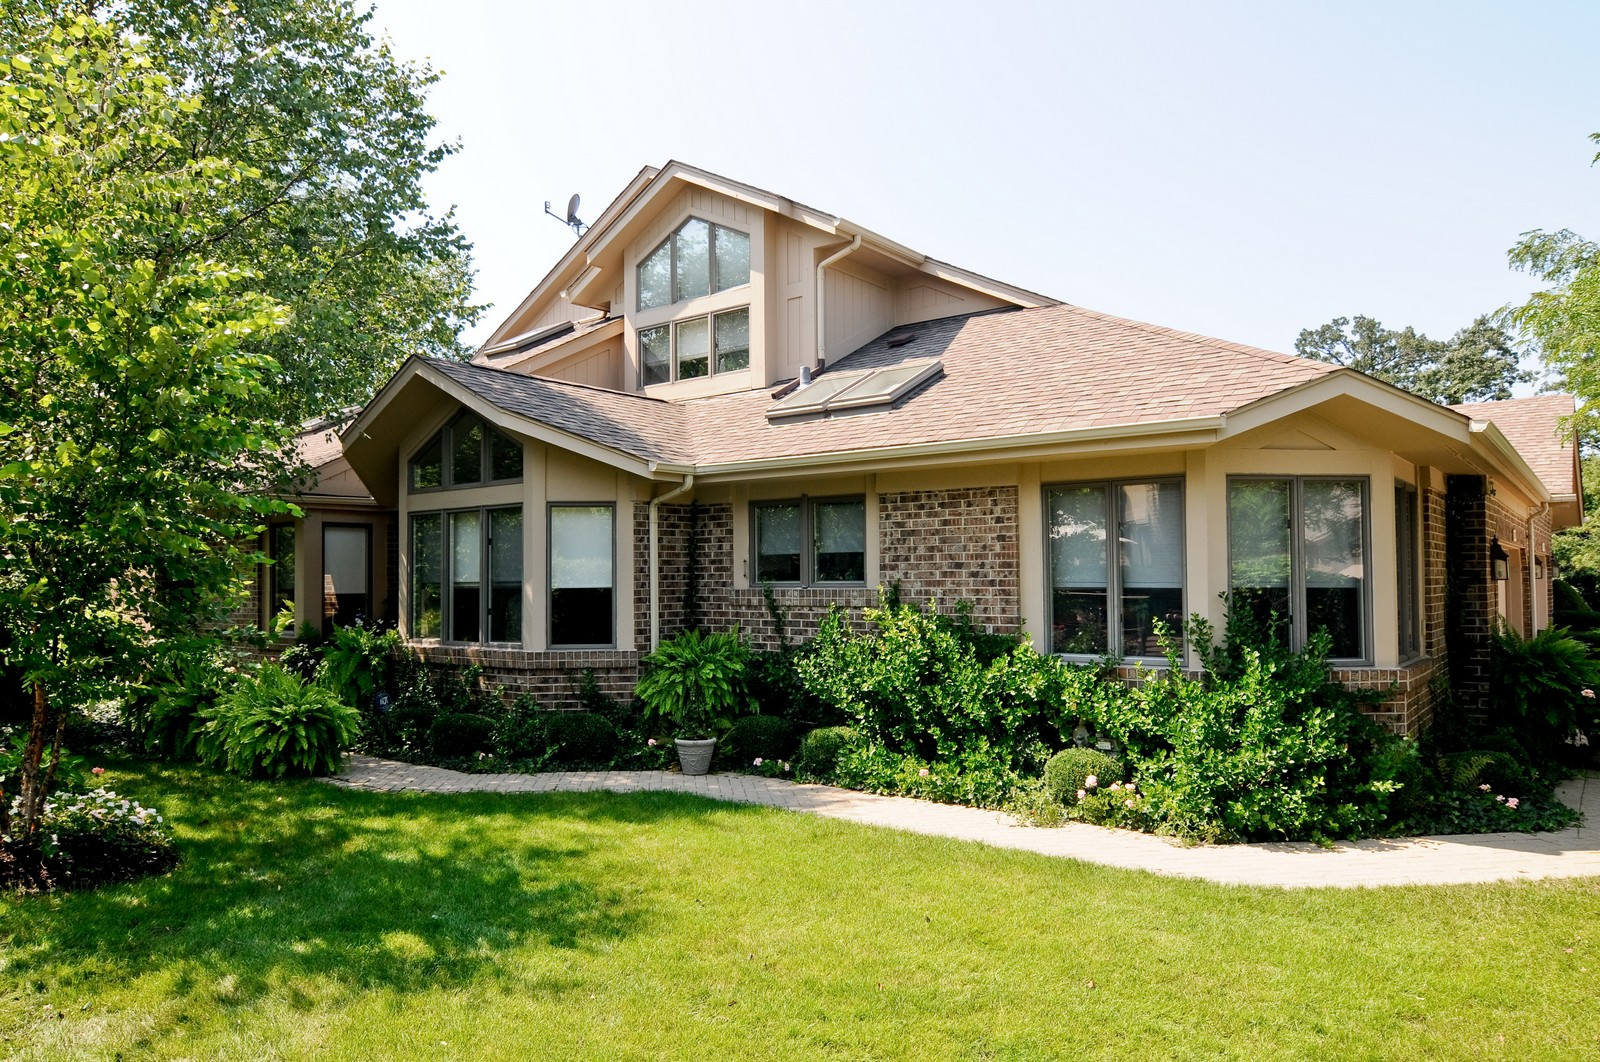 Real Estate Photography - 20060 Inverness, Olympia Fields, IL, 60461 - Front View